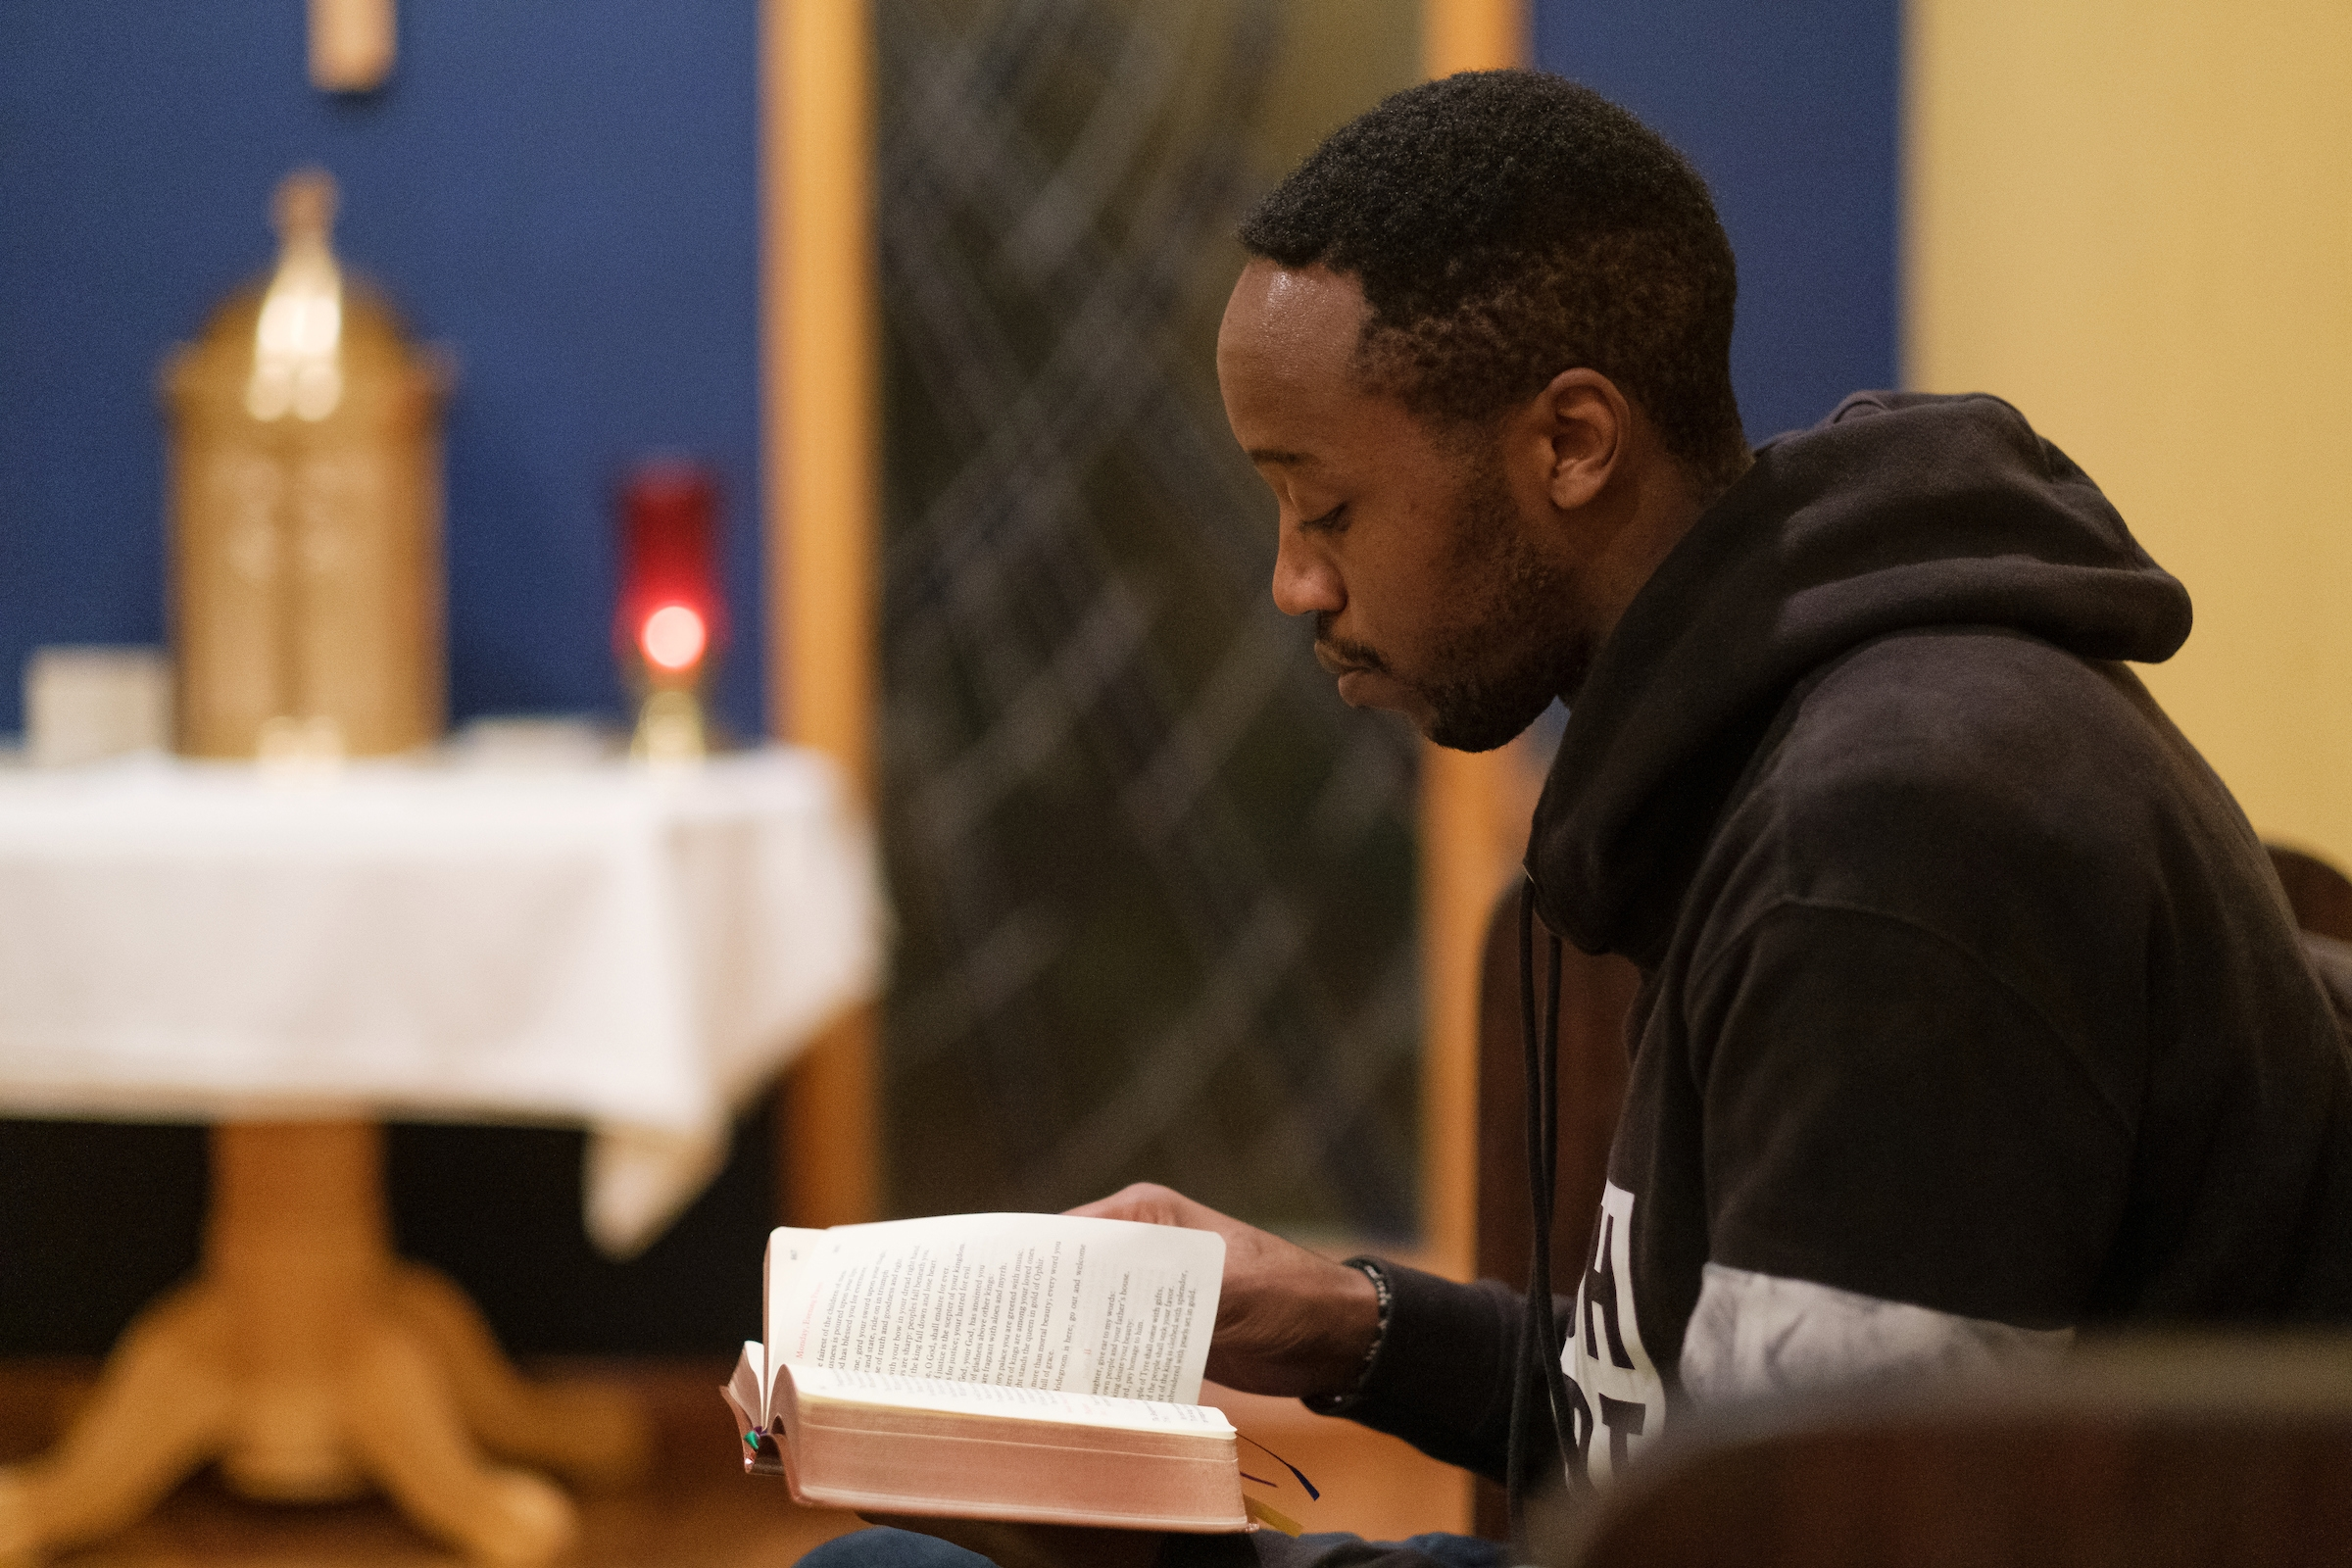 Seminarian Patrick Mbuiyu takes part in evening prayers at the Vianney House on Monday, January 21, 2019 in Seattle. (PHOTO by Stephen Brashear) Book, Chapel, Prayer